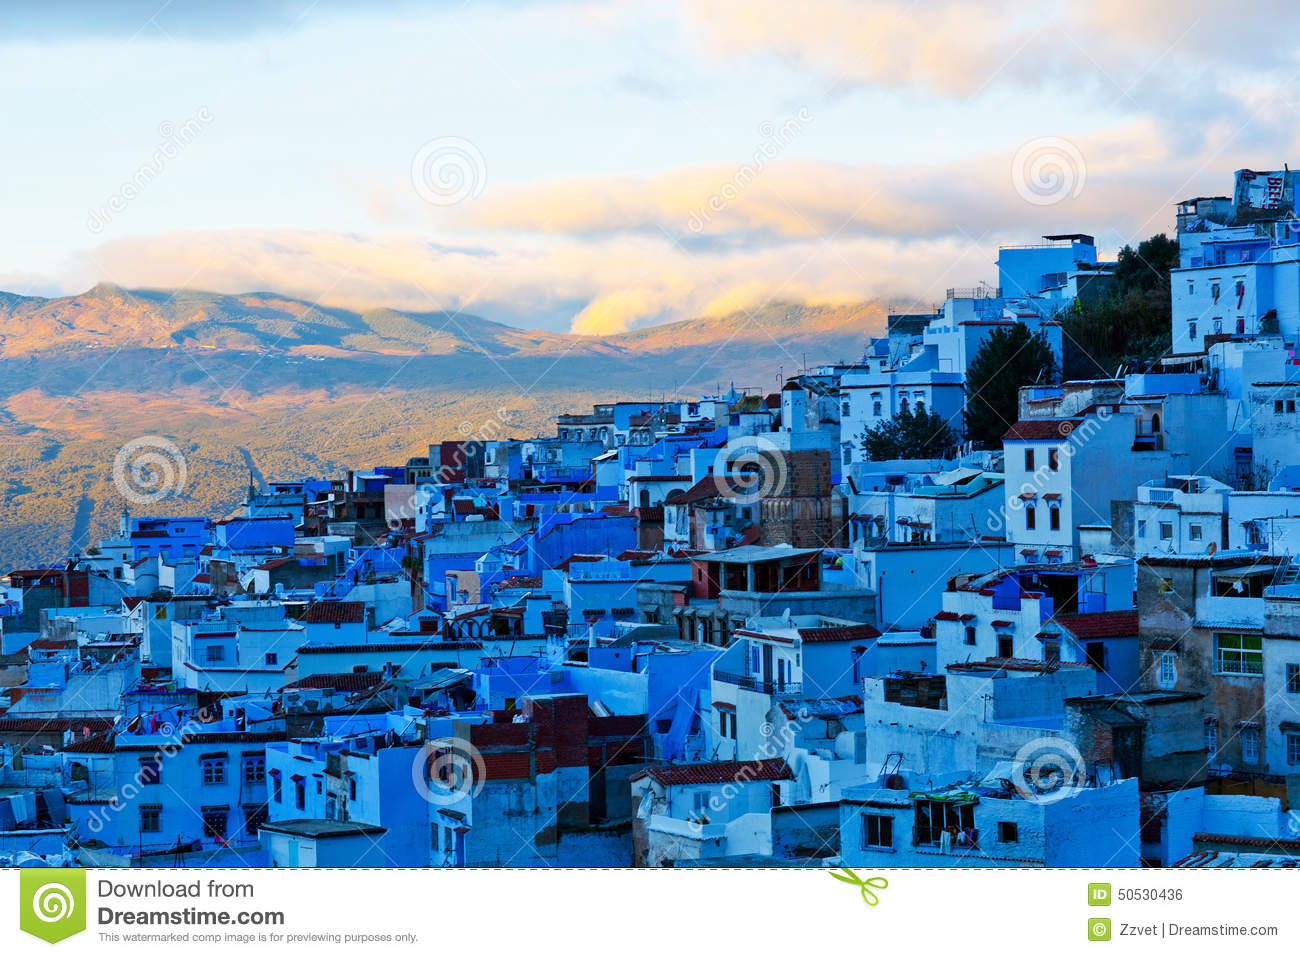 how to get to chefchaouen from casablanca